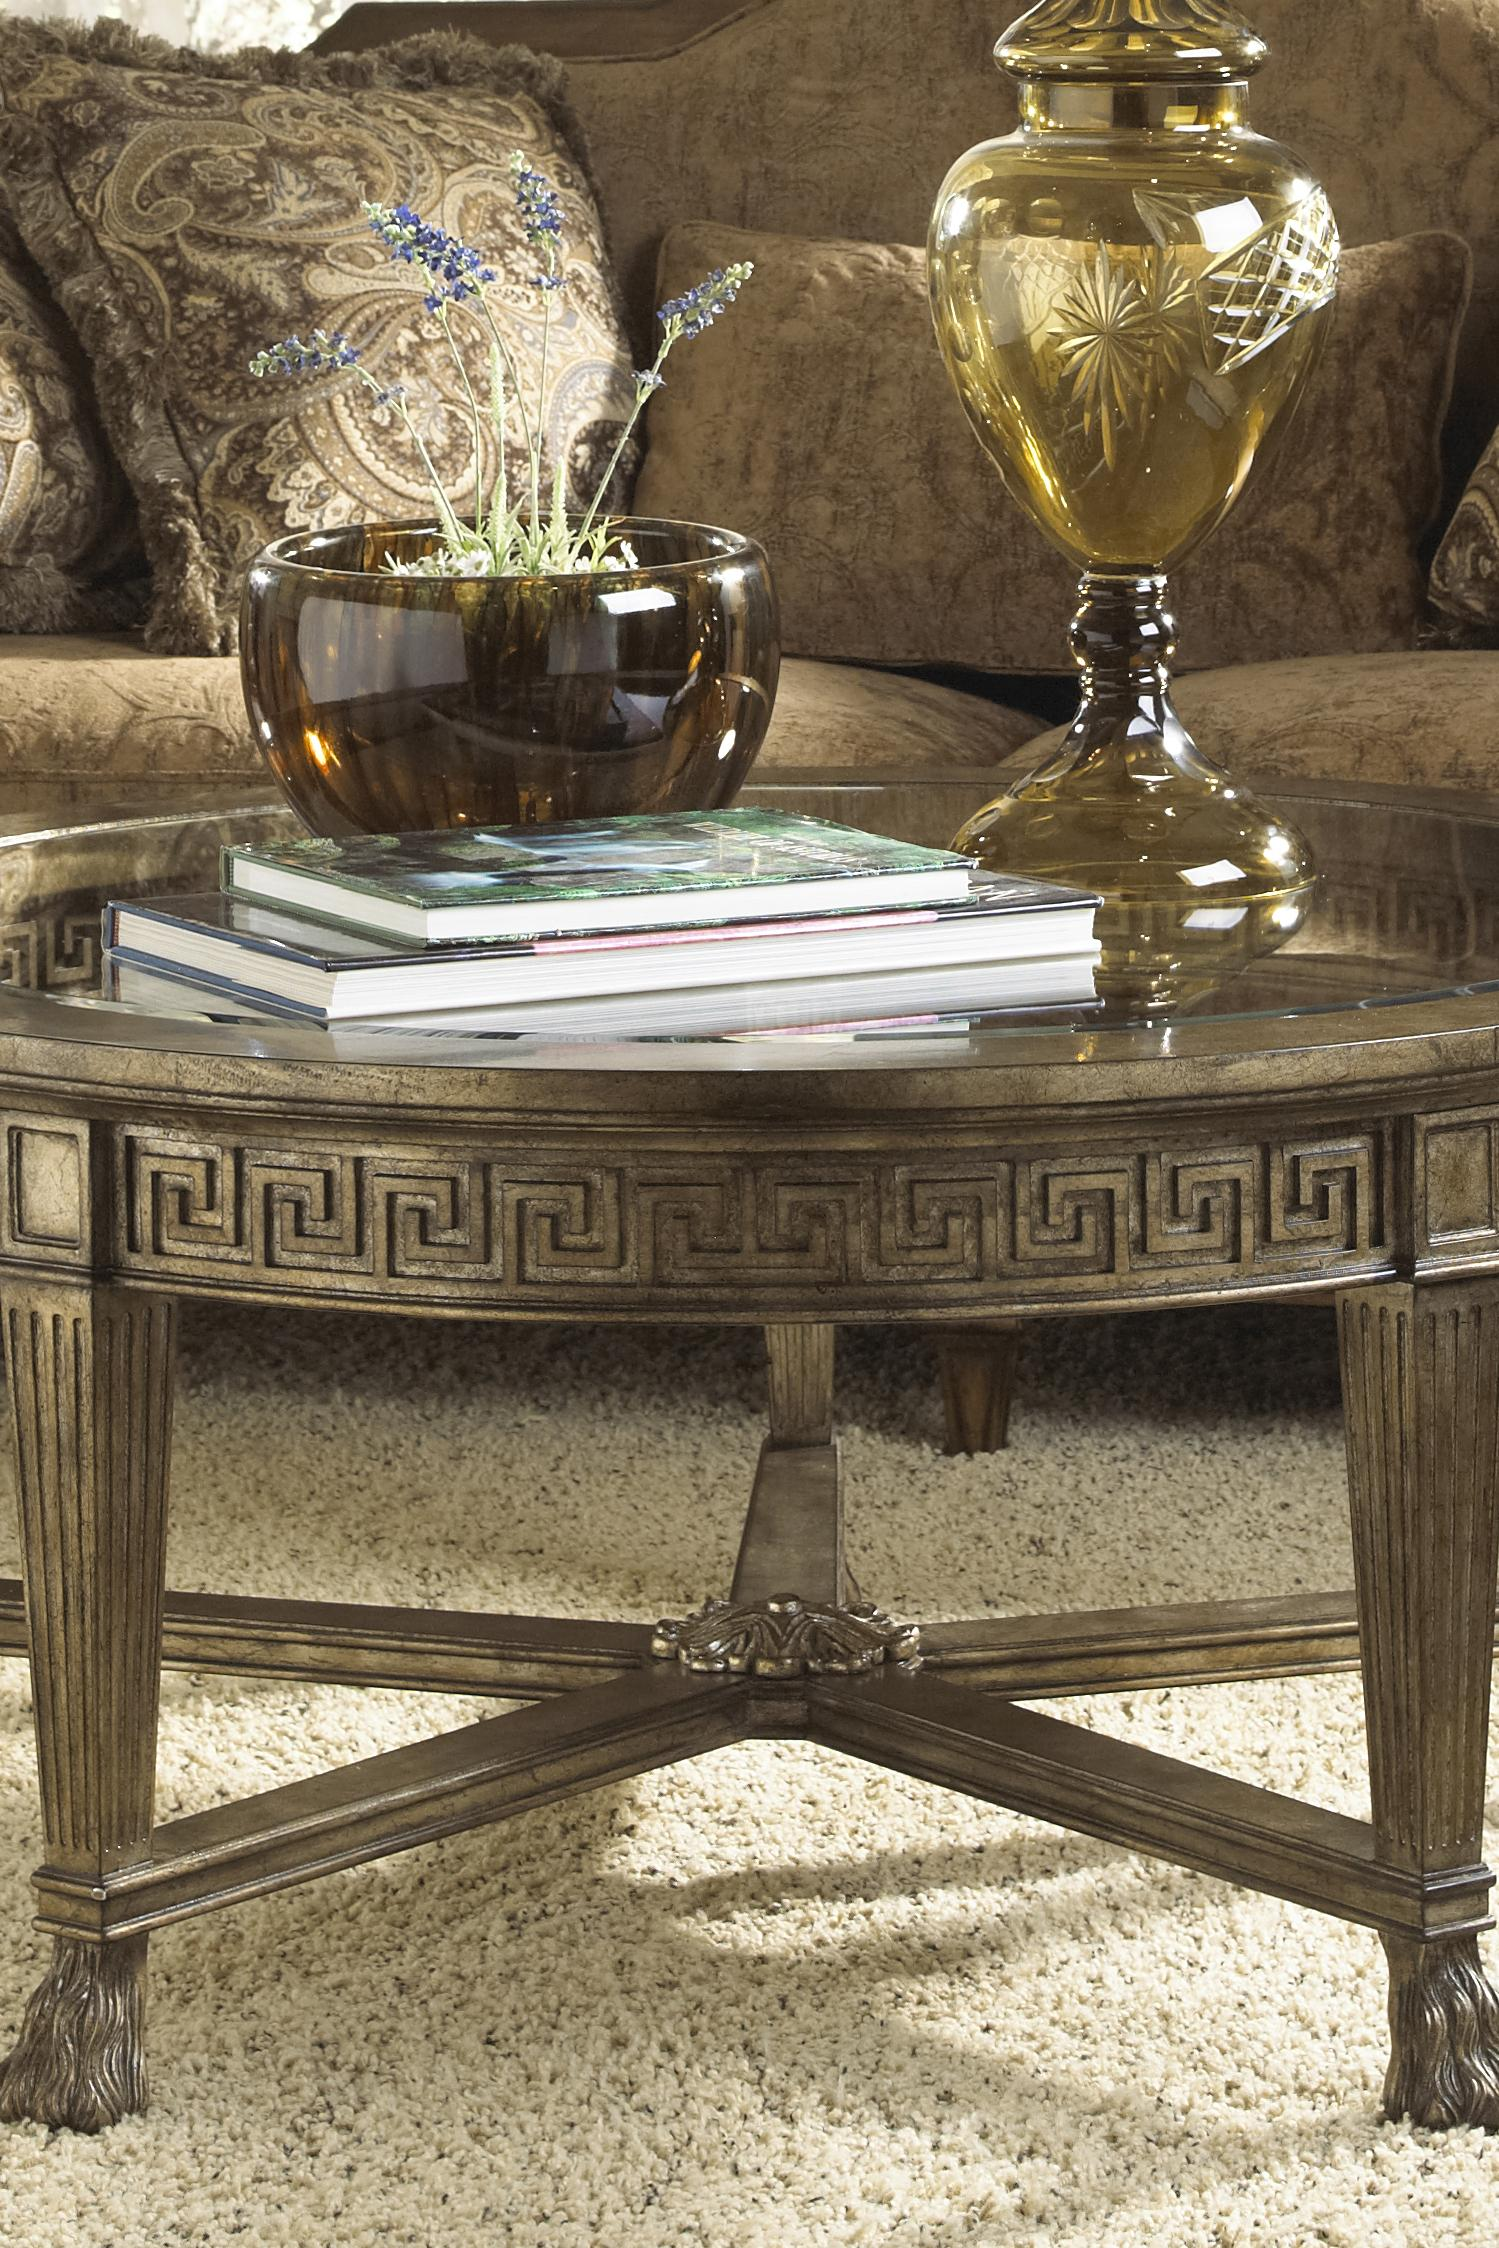 Delicieux Fine Furniture Design Belvedere Grecian Style Round Coffee Table With Glass  Top | Stuckey Furniture | Cocktail/Coffee Tables